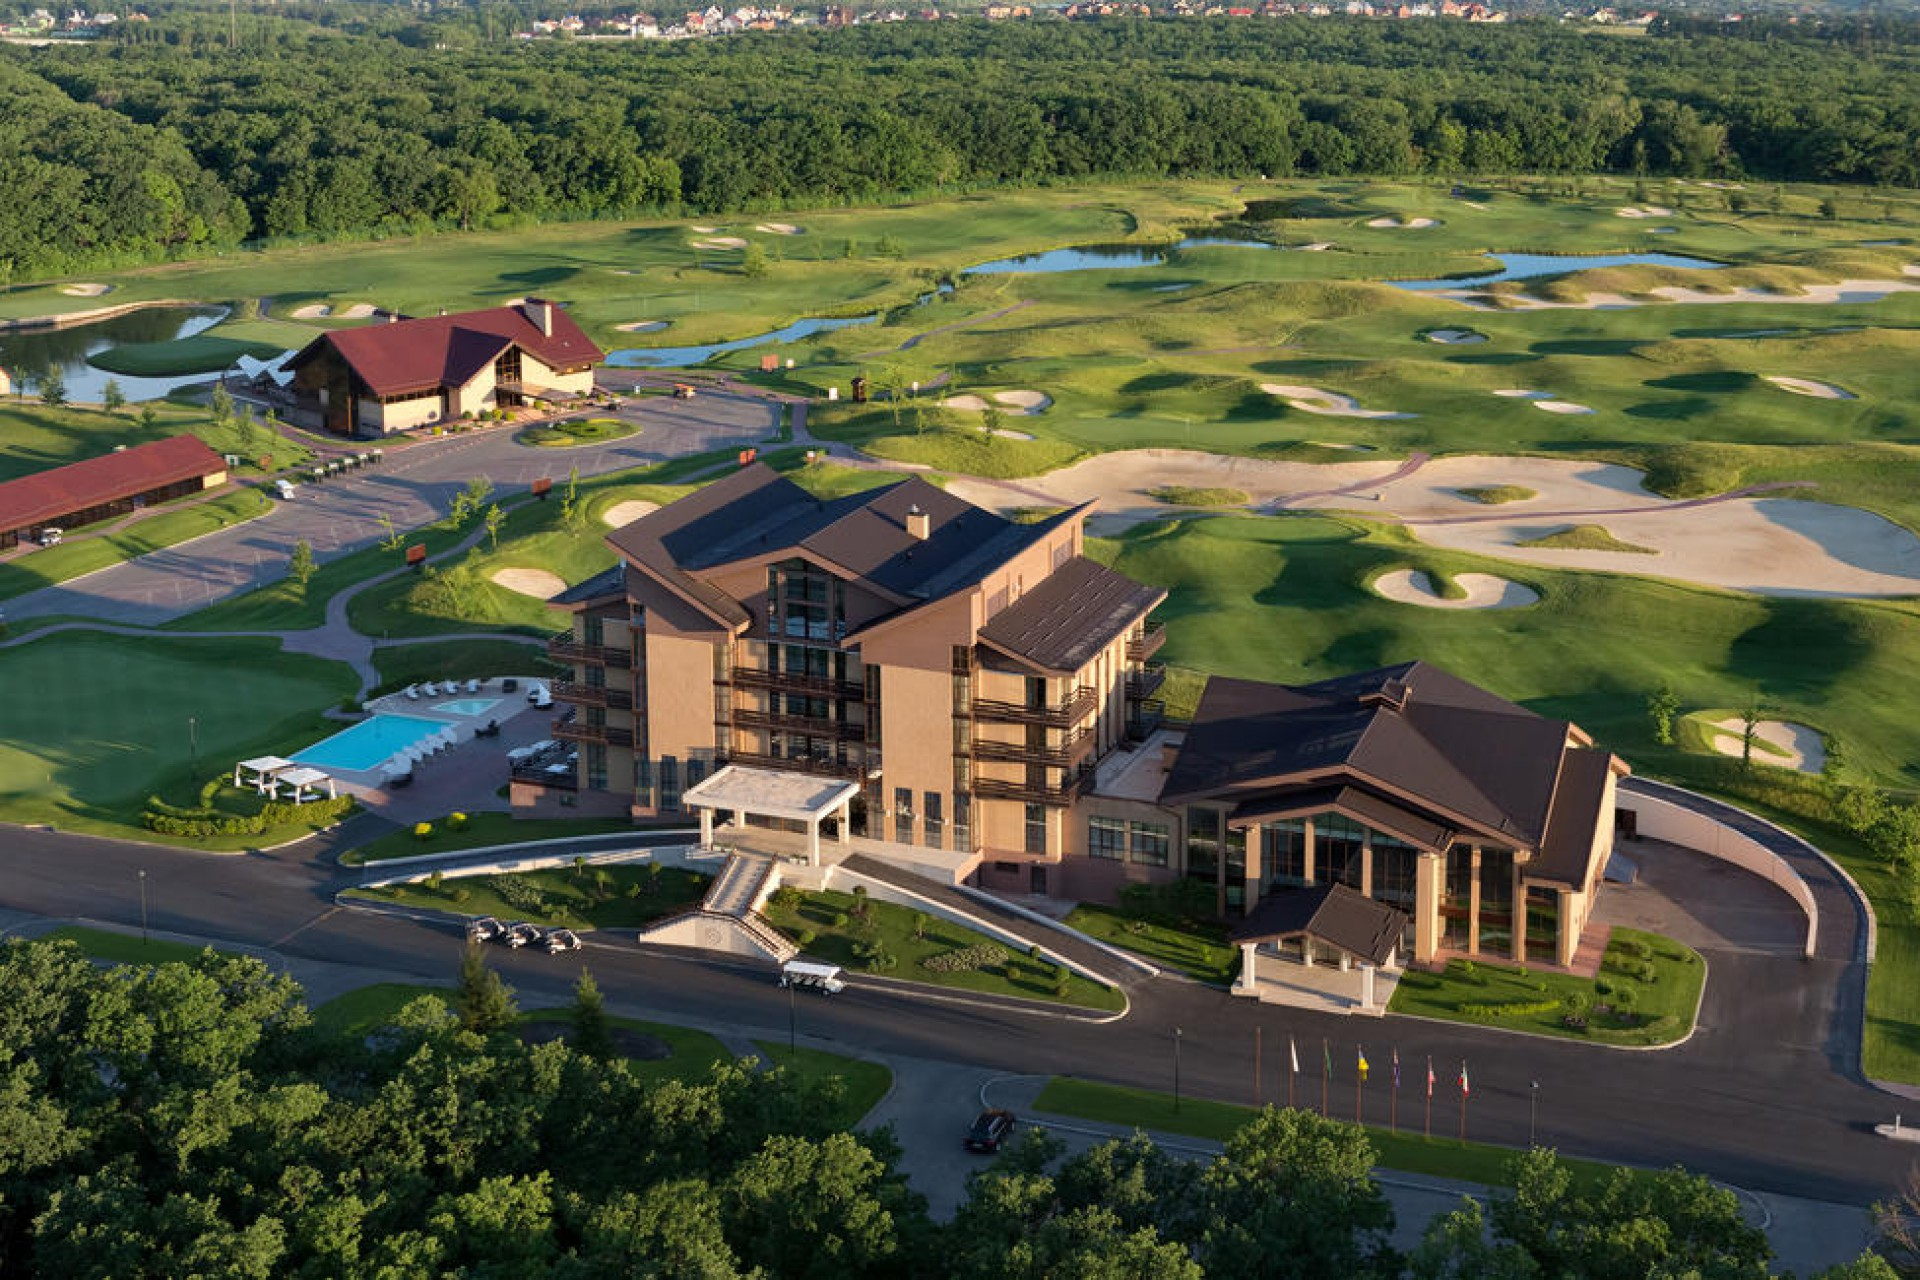 Отель Superior Golf And Spa Resort 5*  Супериор Гольф энд Спа Резорт